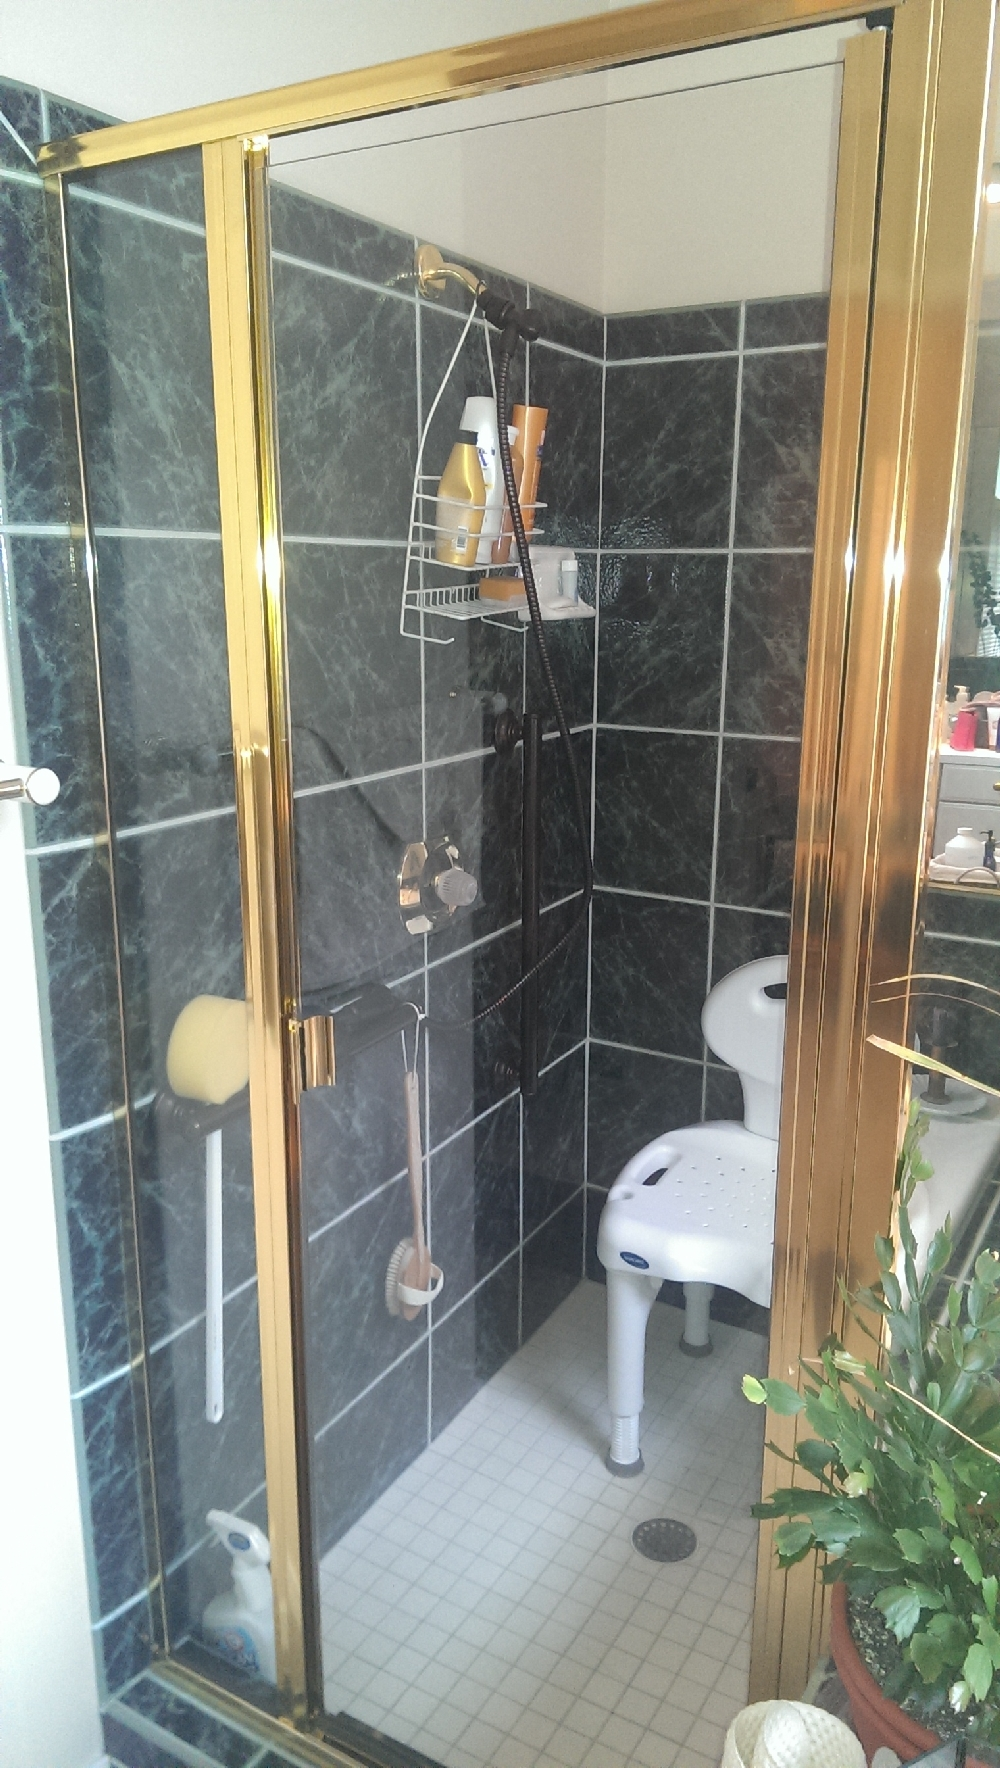 Master - Conveient stand up shower with secure side handles - wand and chair